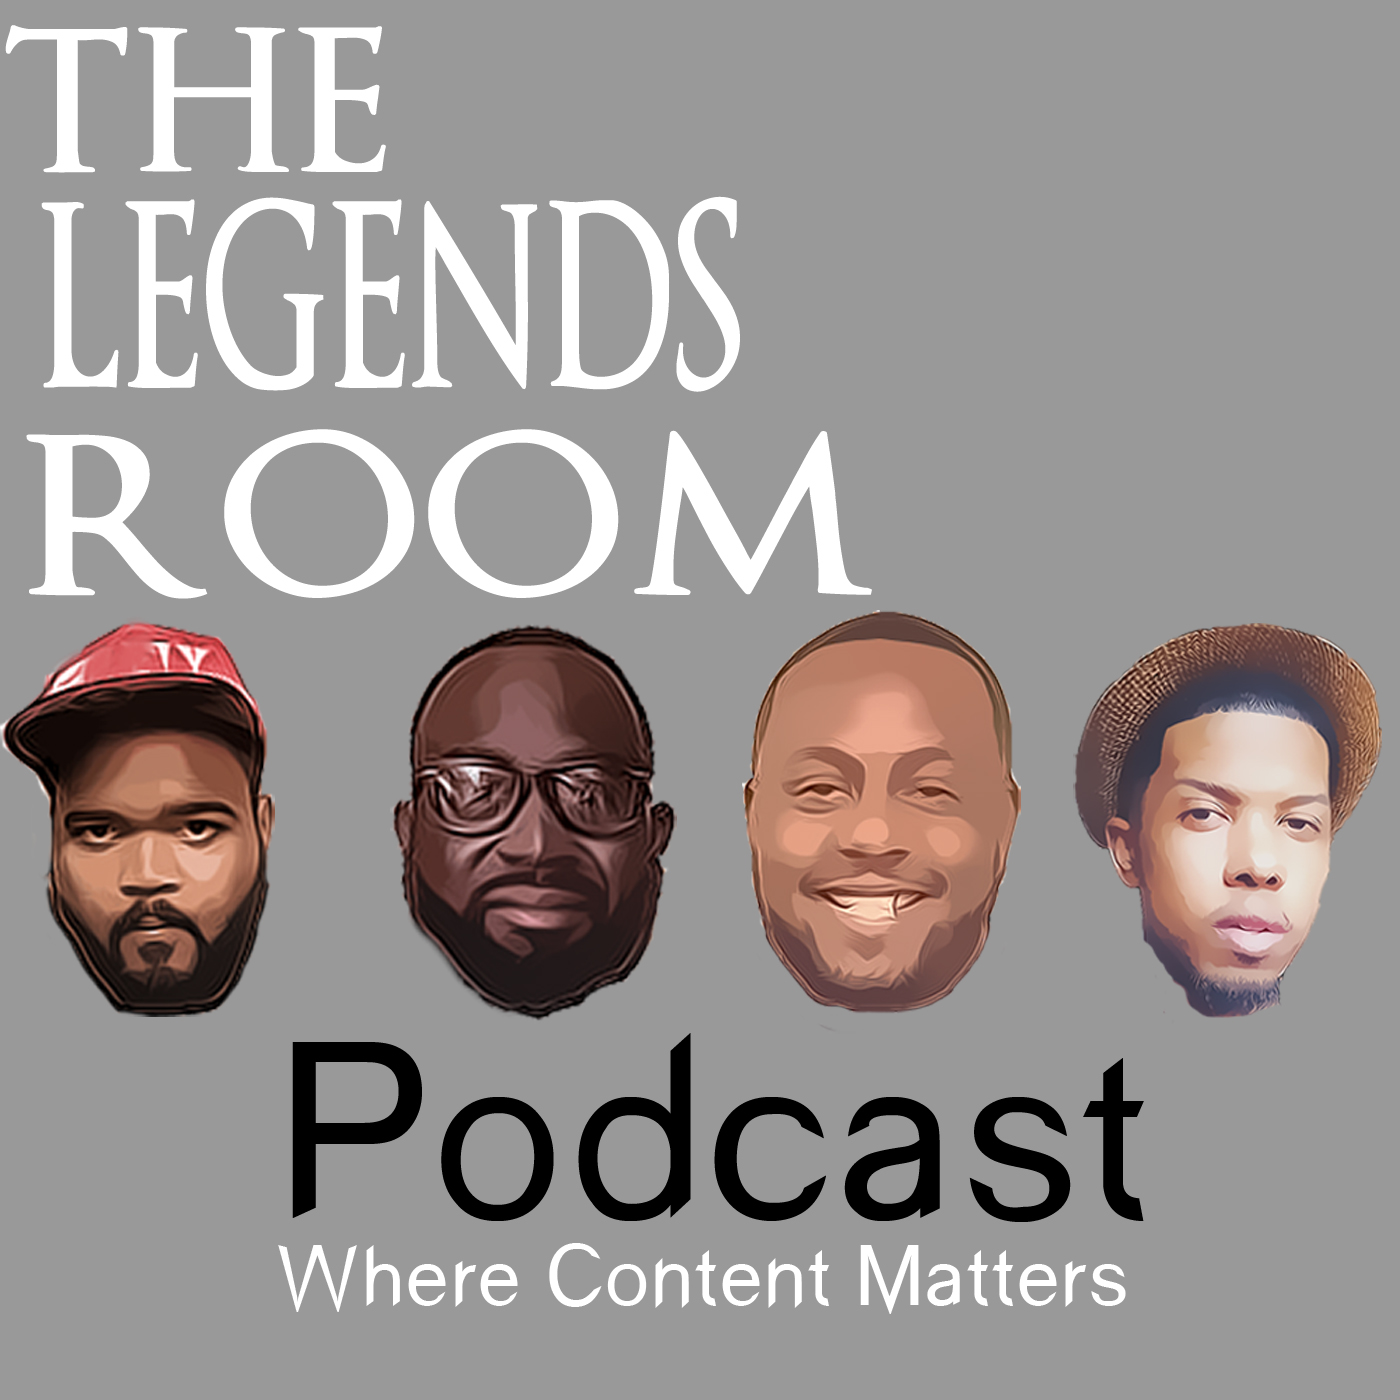 The Legends Room Podcast - The Legends Room